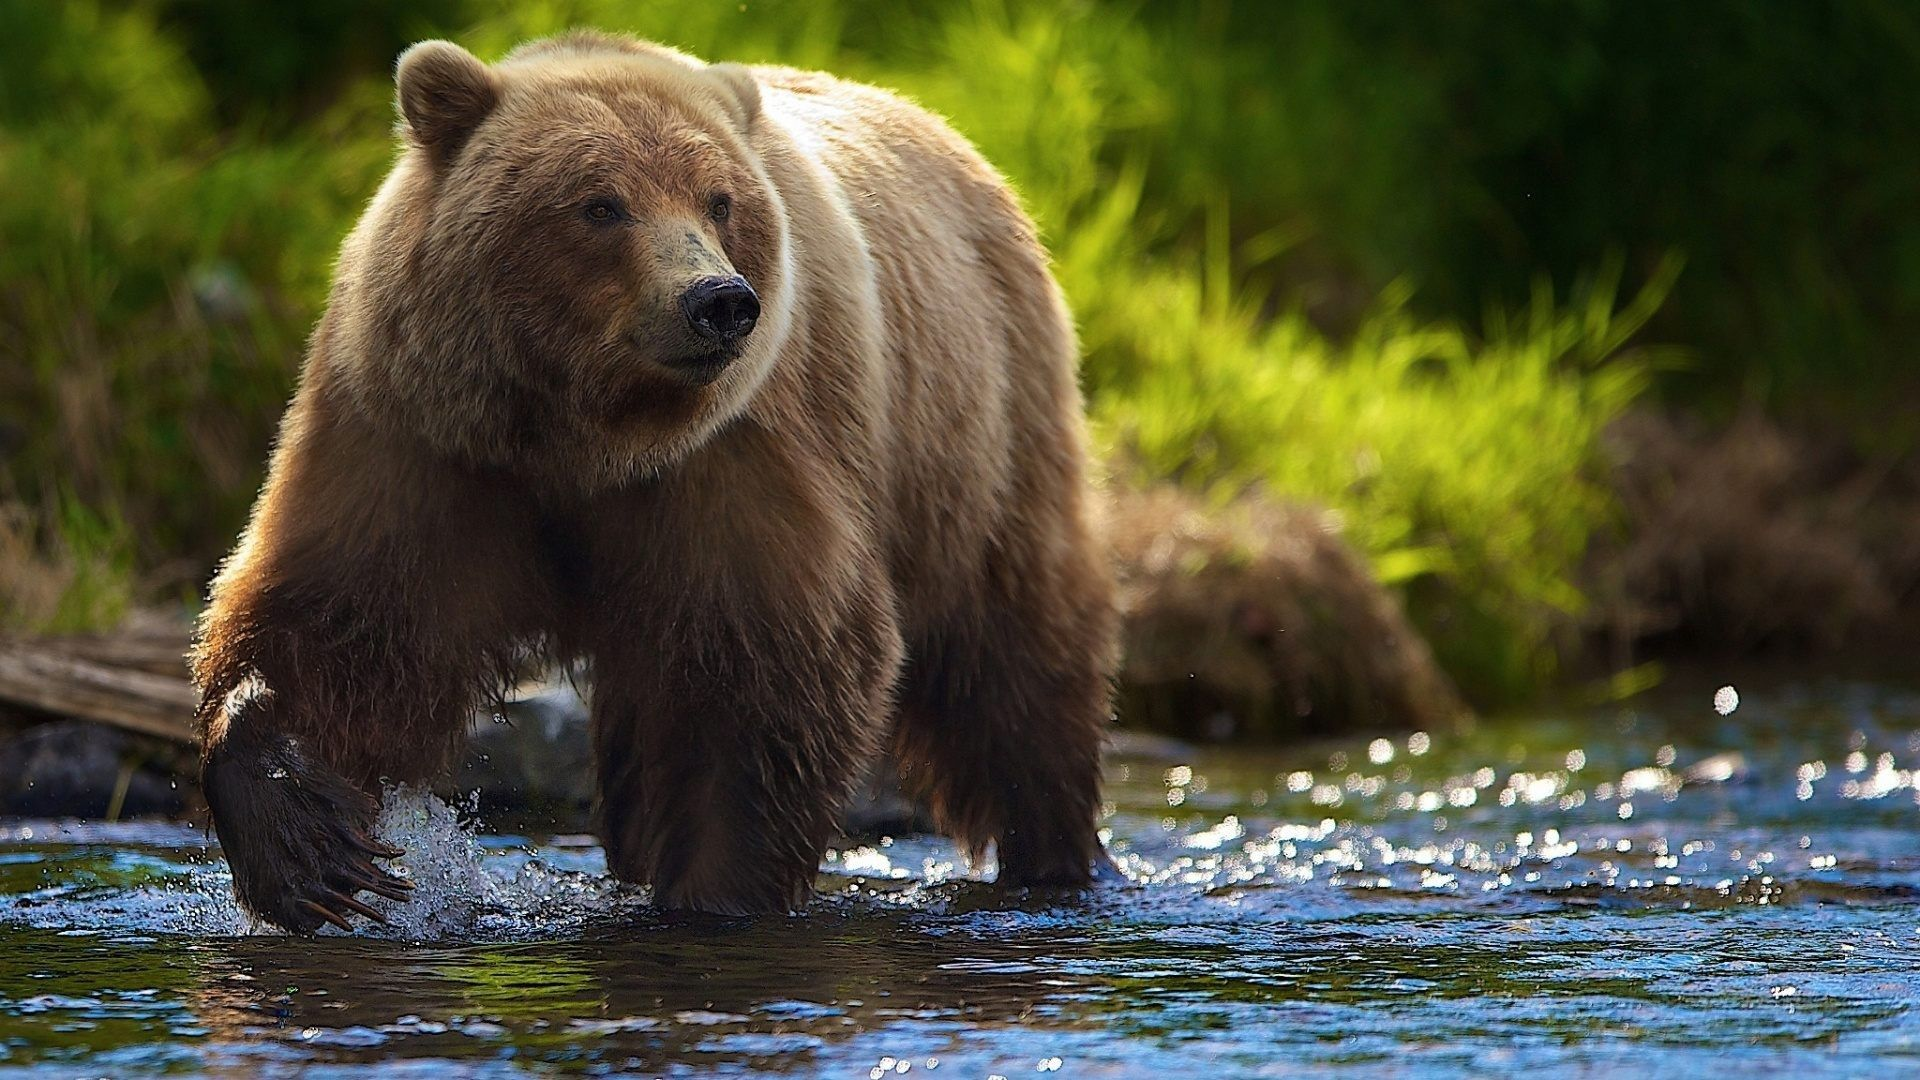 bear wallpaper mobile | animals wallpapers | pinterest | bear